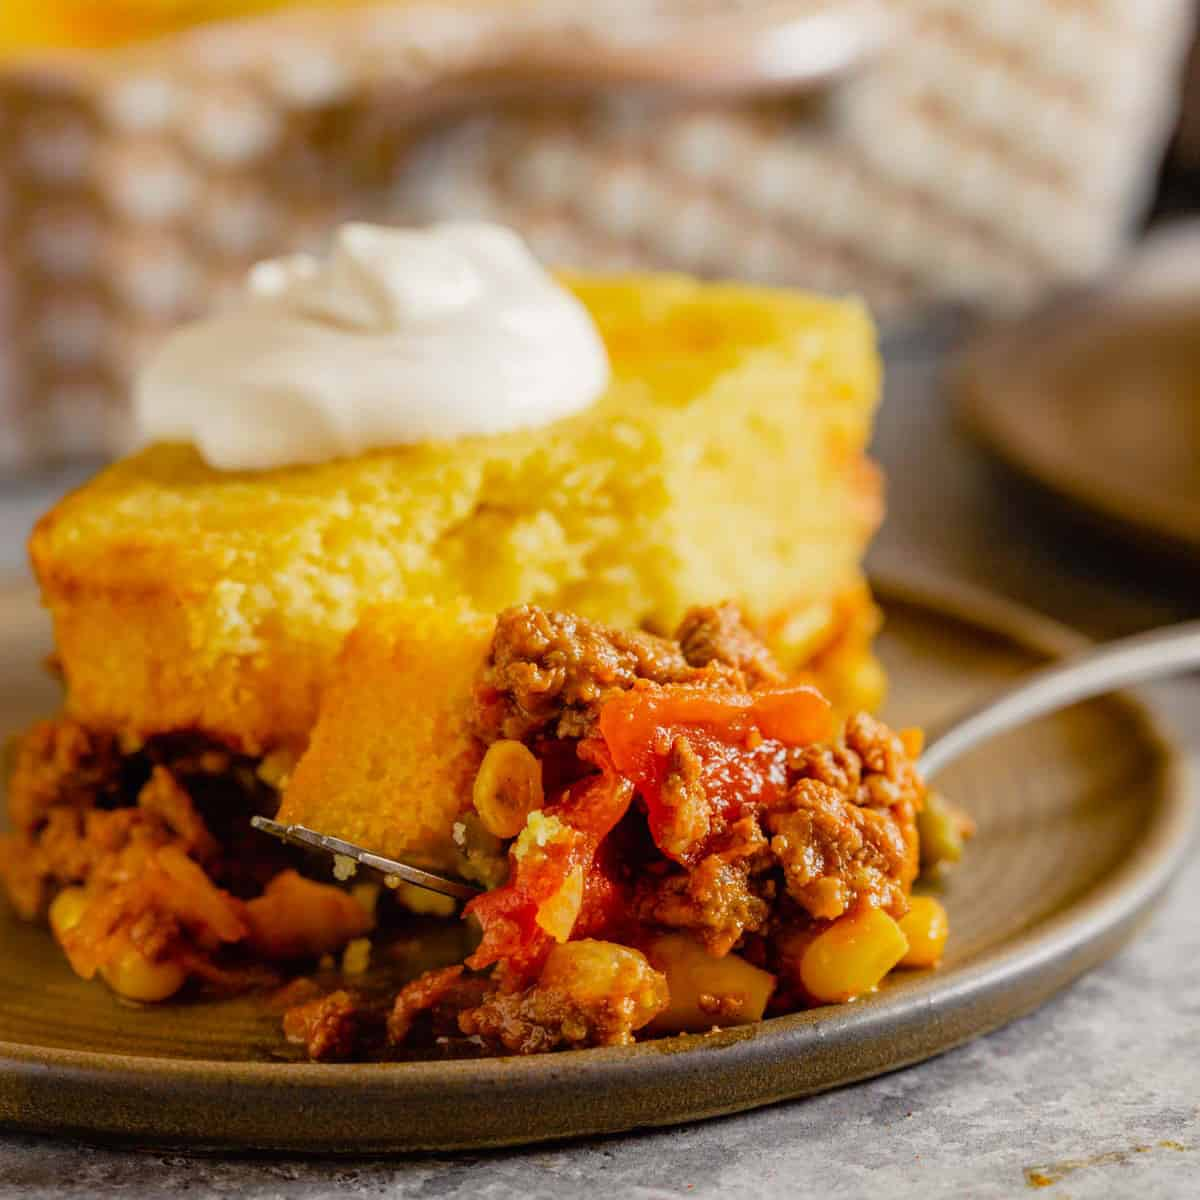 A square photo of tamale pie on a brown plate topped with sour cream.